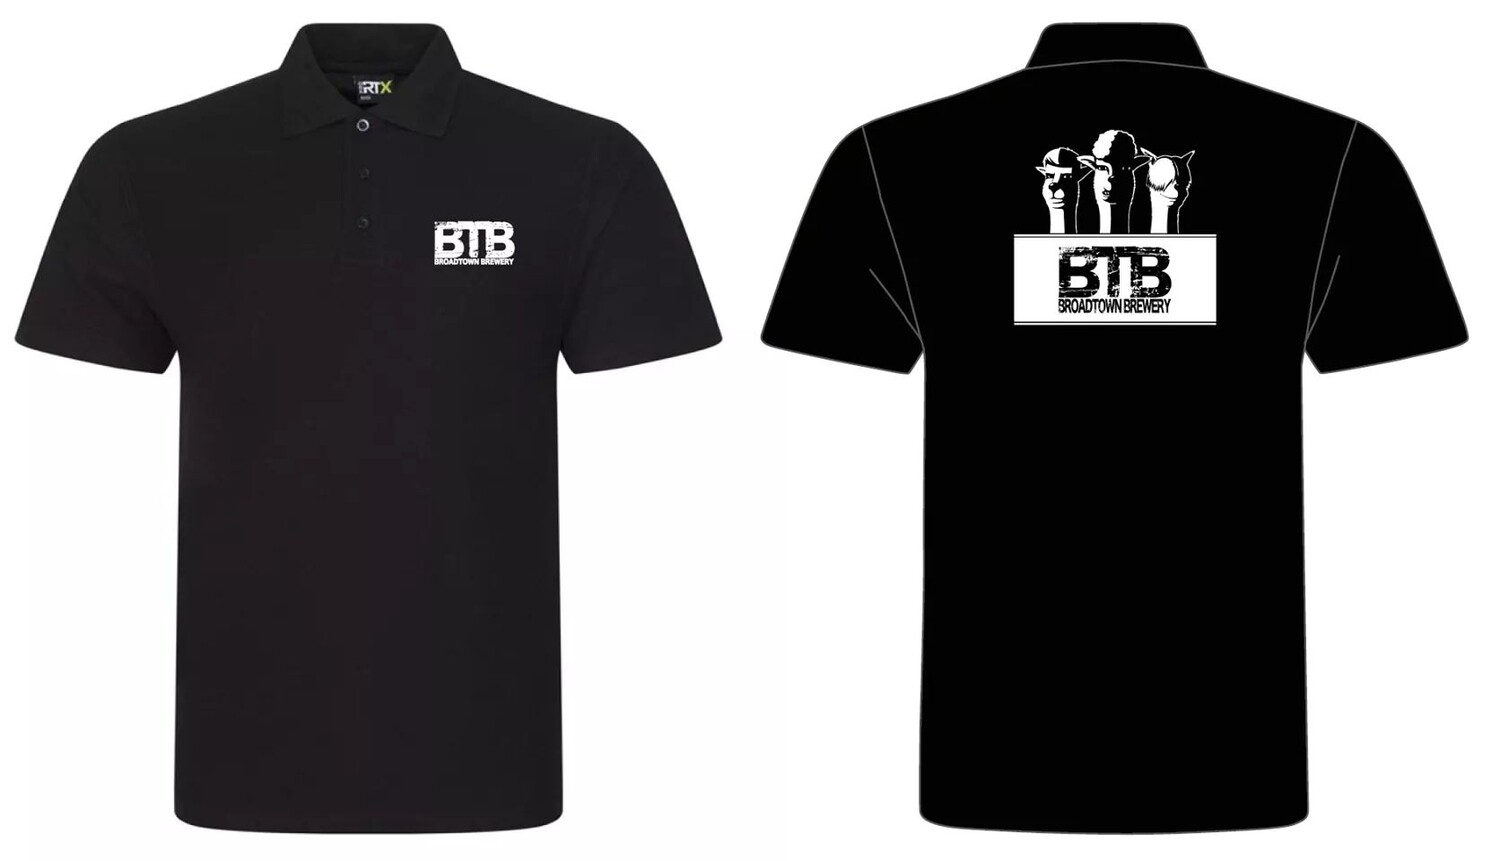 BTB XL Polo Shirt